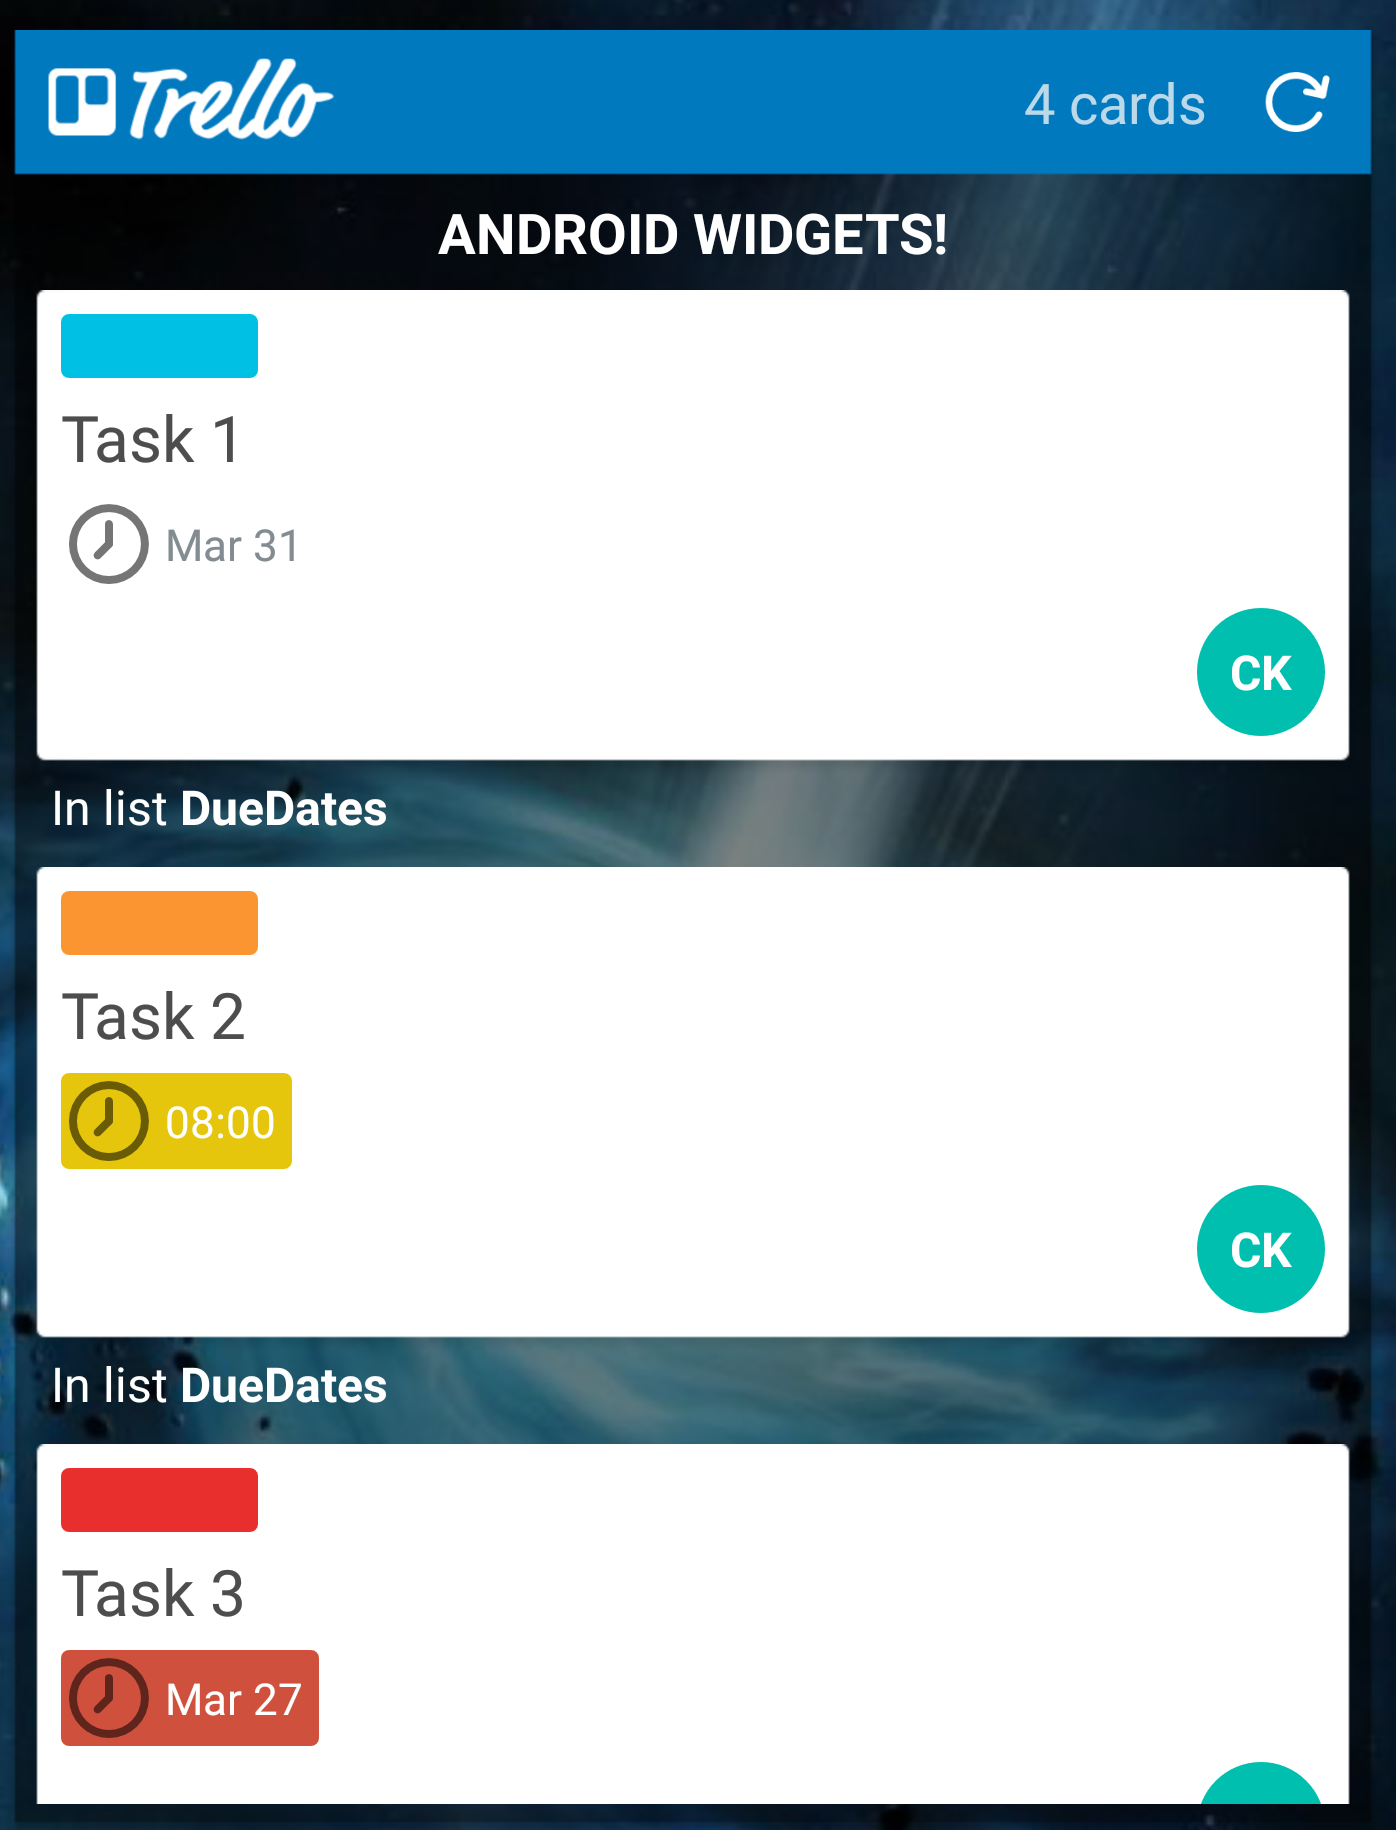 Calendario Android Widget.Trello For Android Widgets Trello Help